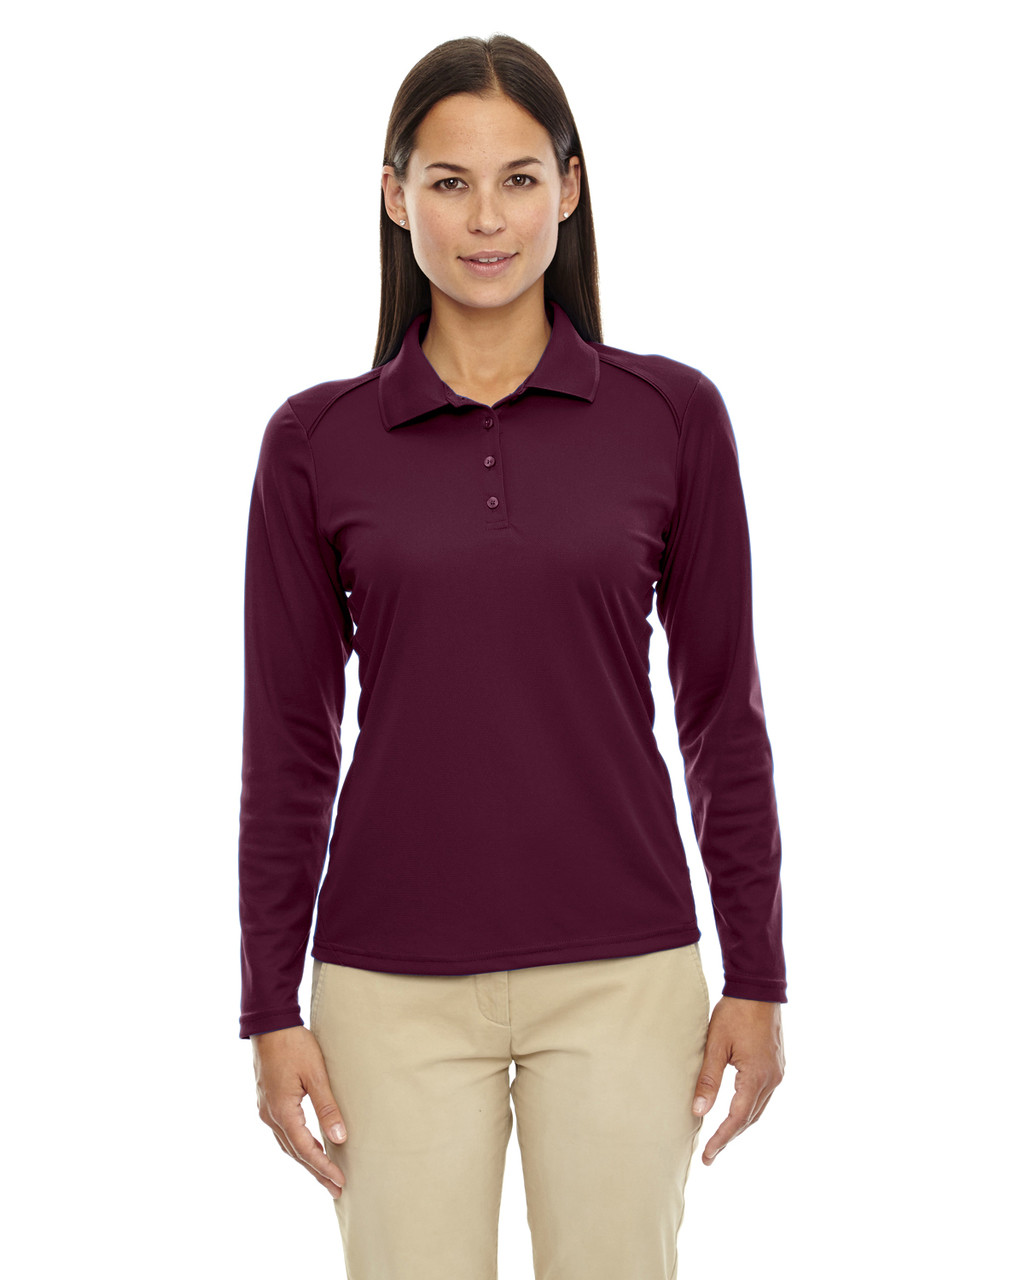 Burgundy - 75111 Ash City - Extreme Eperformance Ladies' Long-Sleeve Polo Shirt | BlankClothinkg.ca